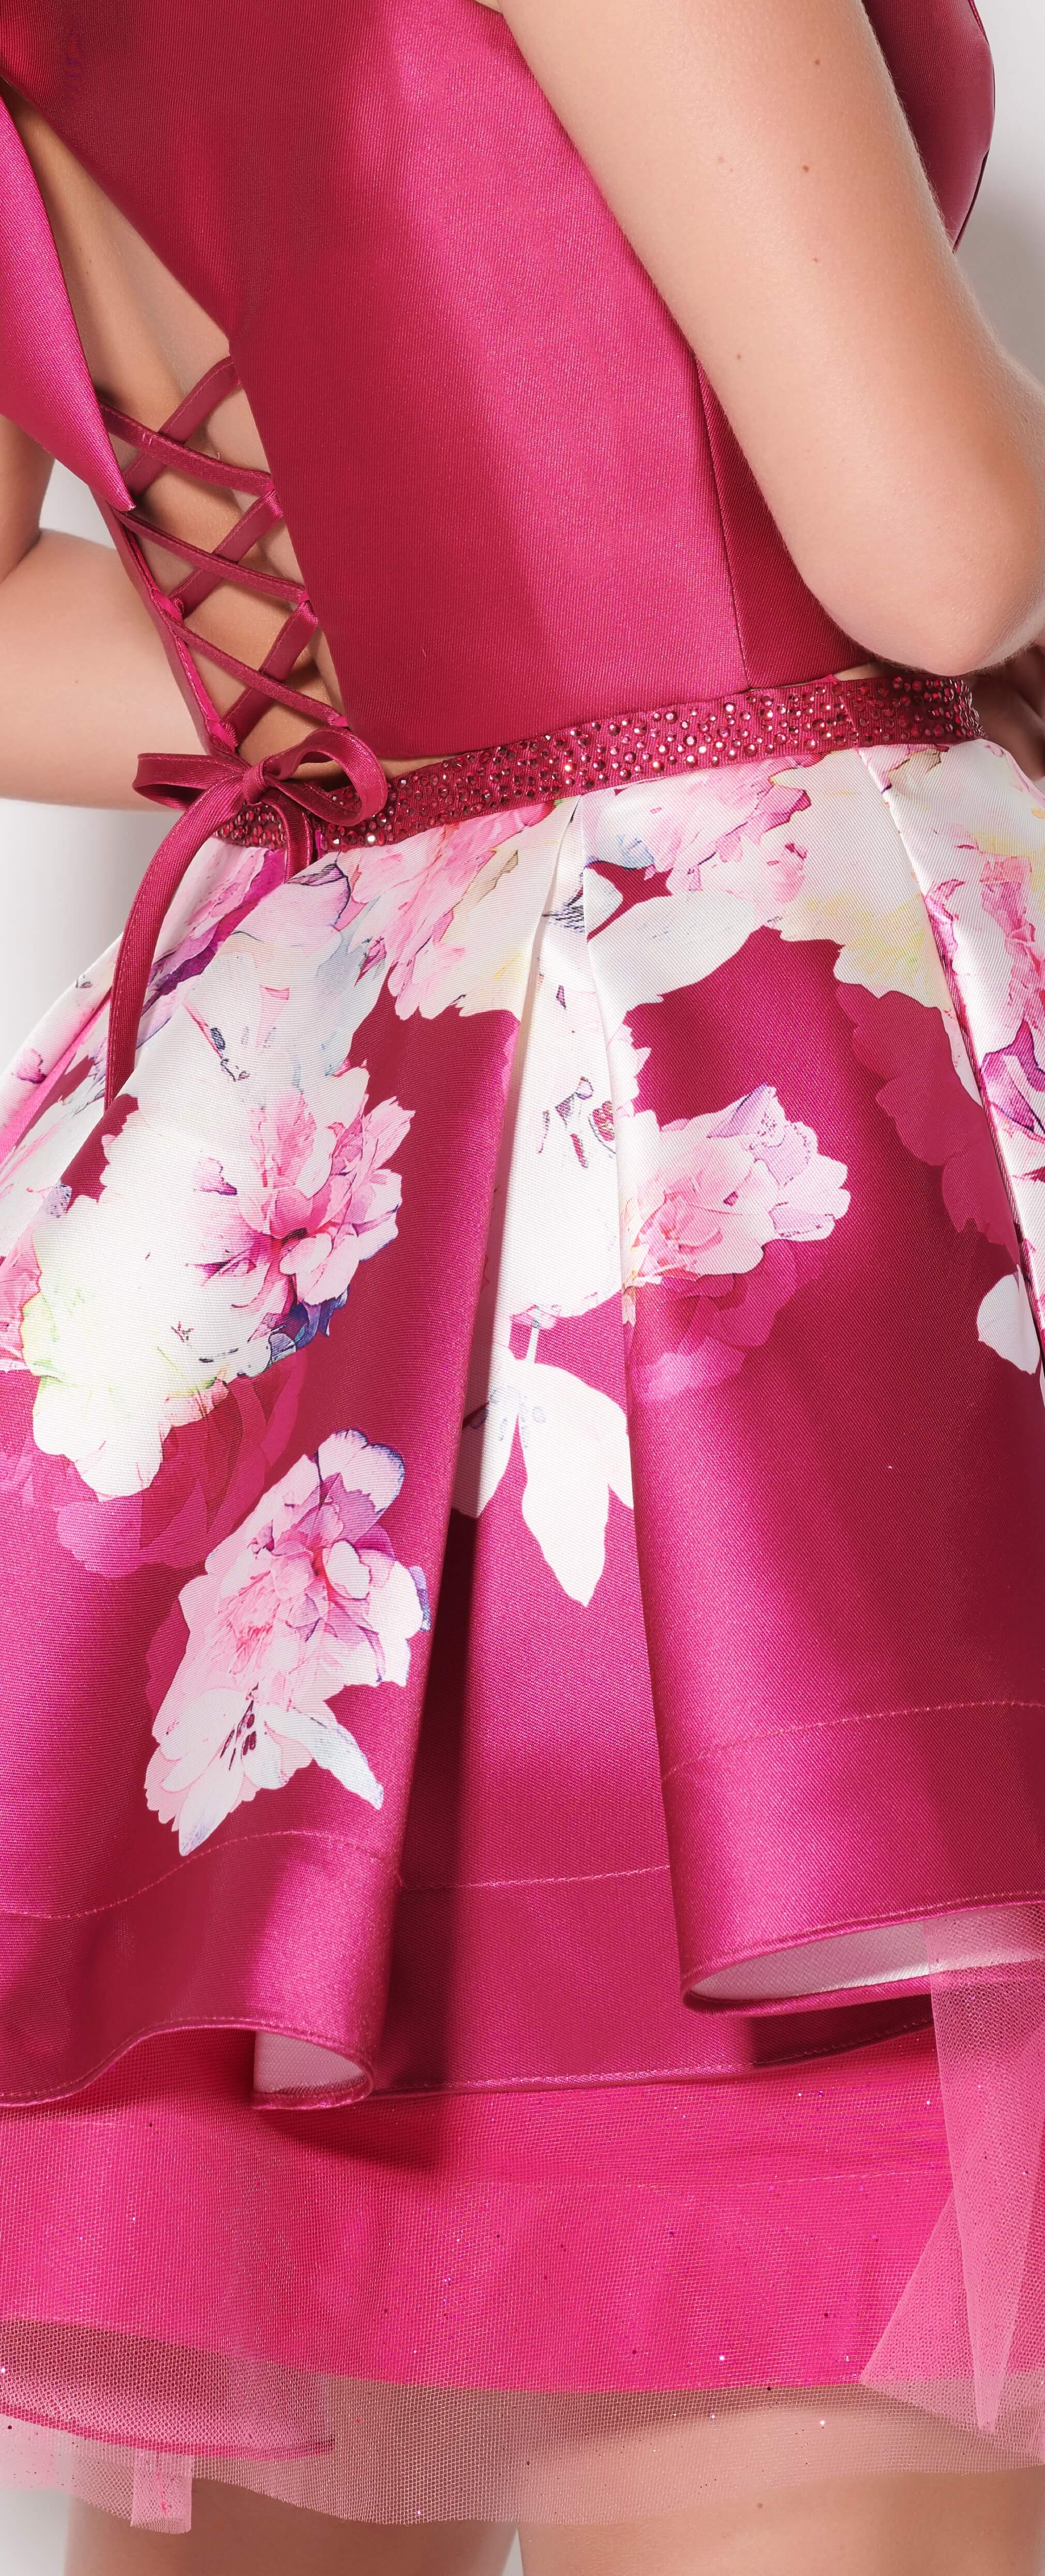 Floral dress in detail